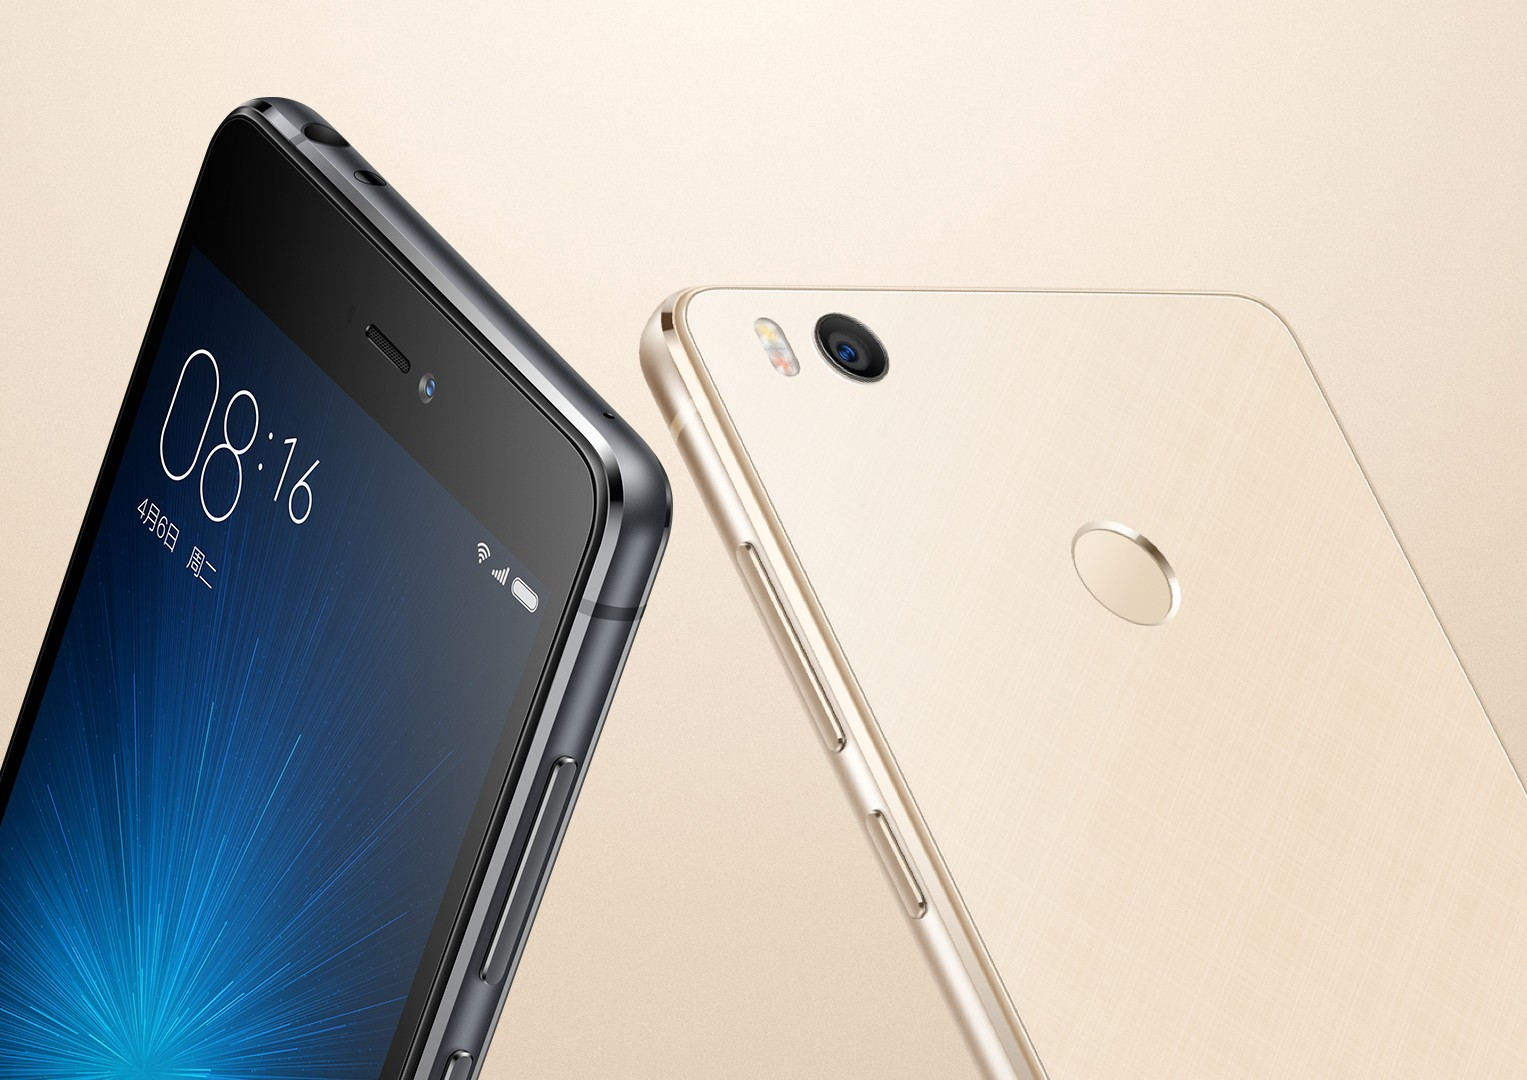 Photo of Introducing the Mi 4S: Metallic smartphone with generous storage and great price from Xiaomi